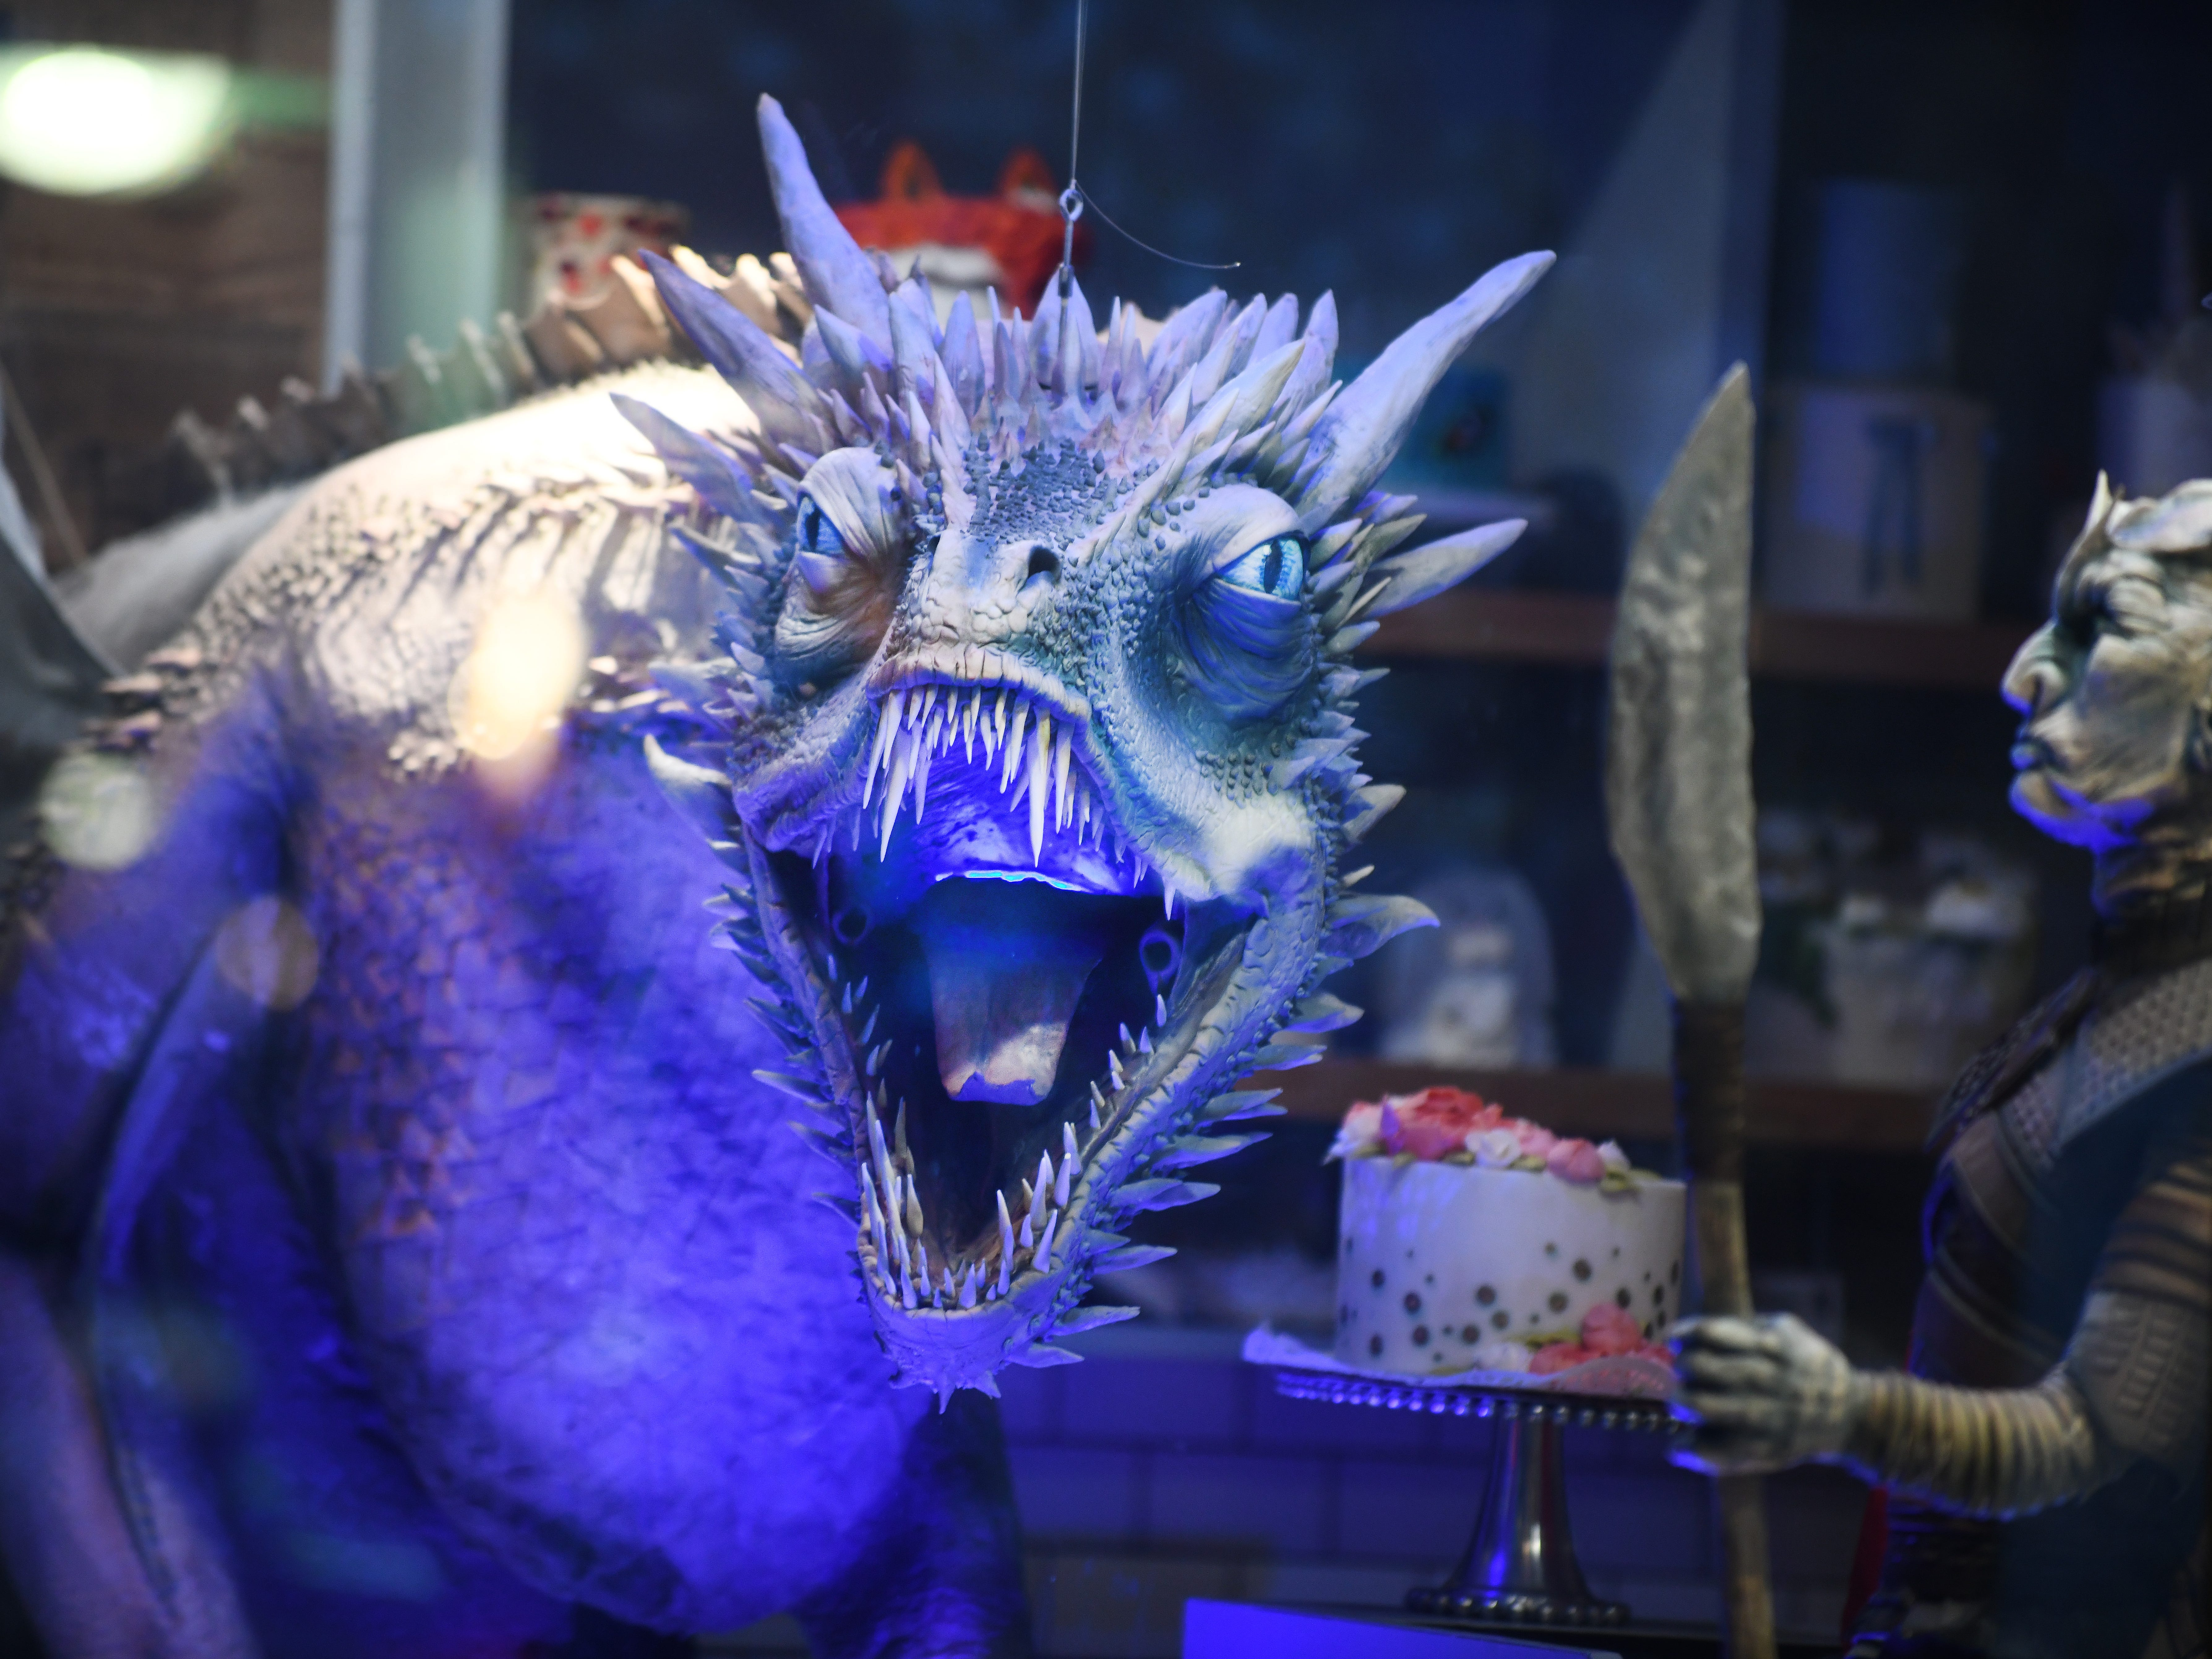 The dragon Viserion, who was turned into an ice dragon by the Night King,  turns his terrifying face toward passersby from the window of The Home Bakery.